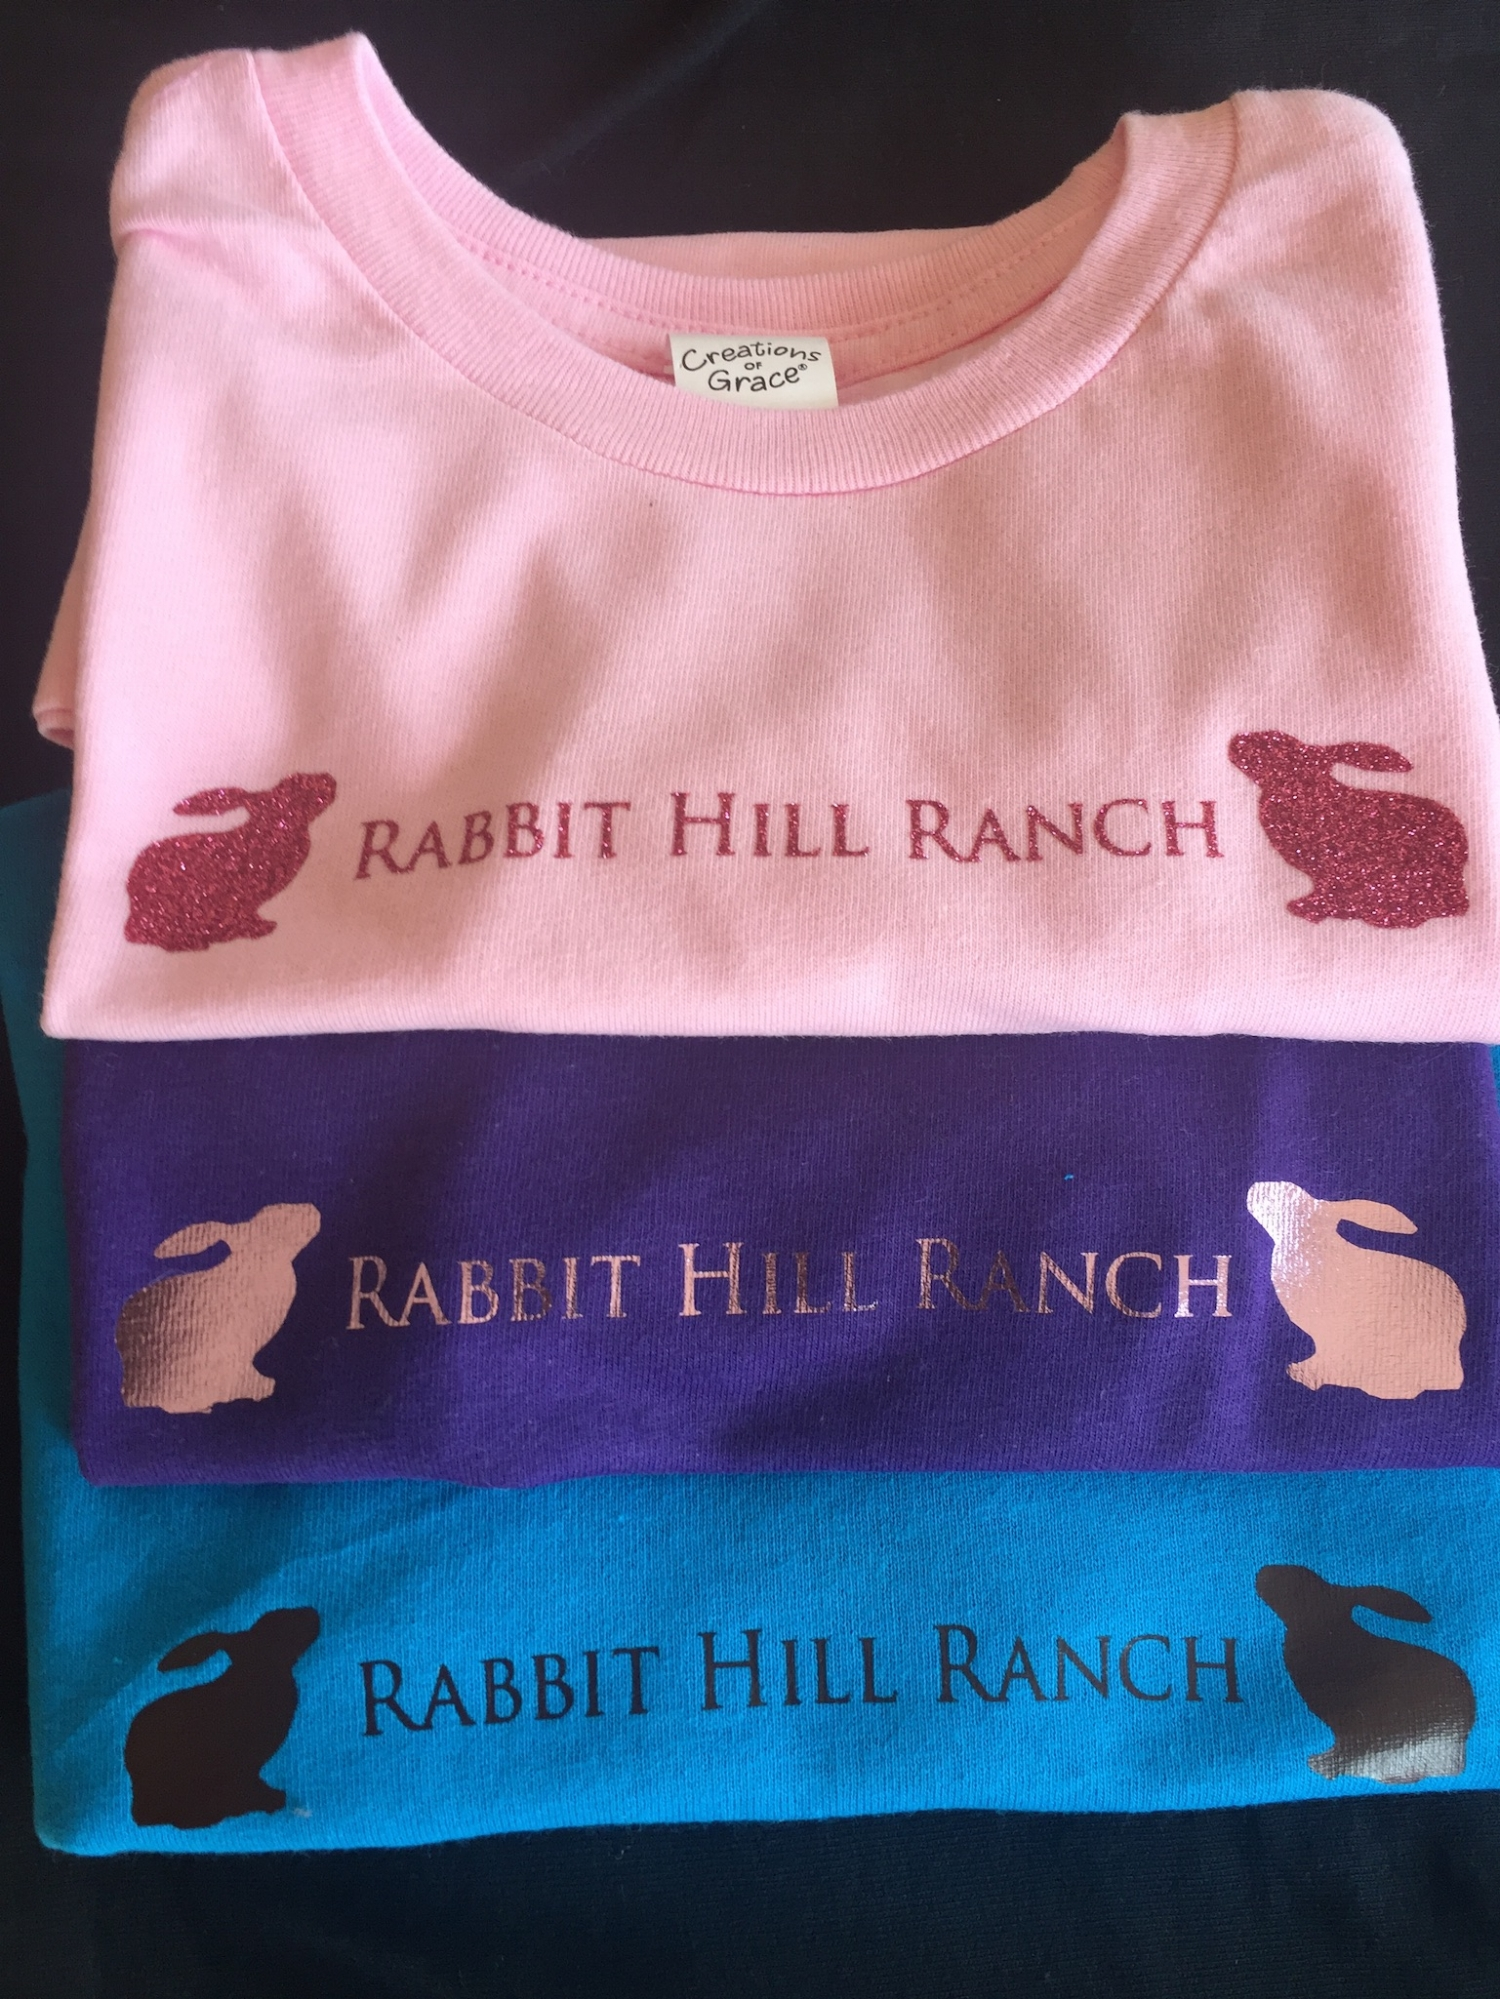 RHR shirts for all sizes